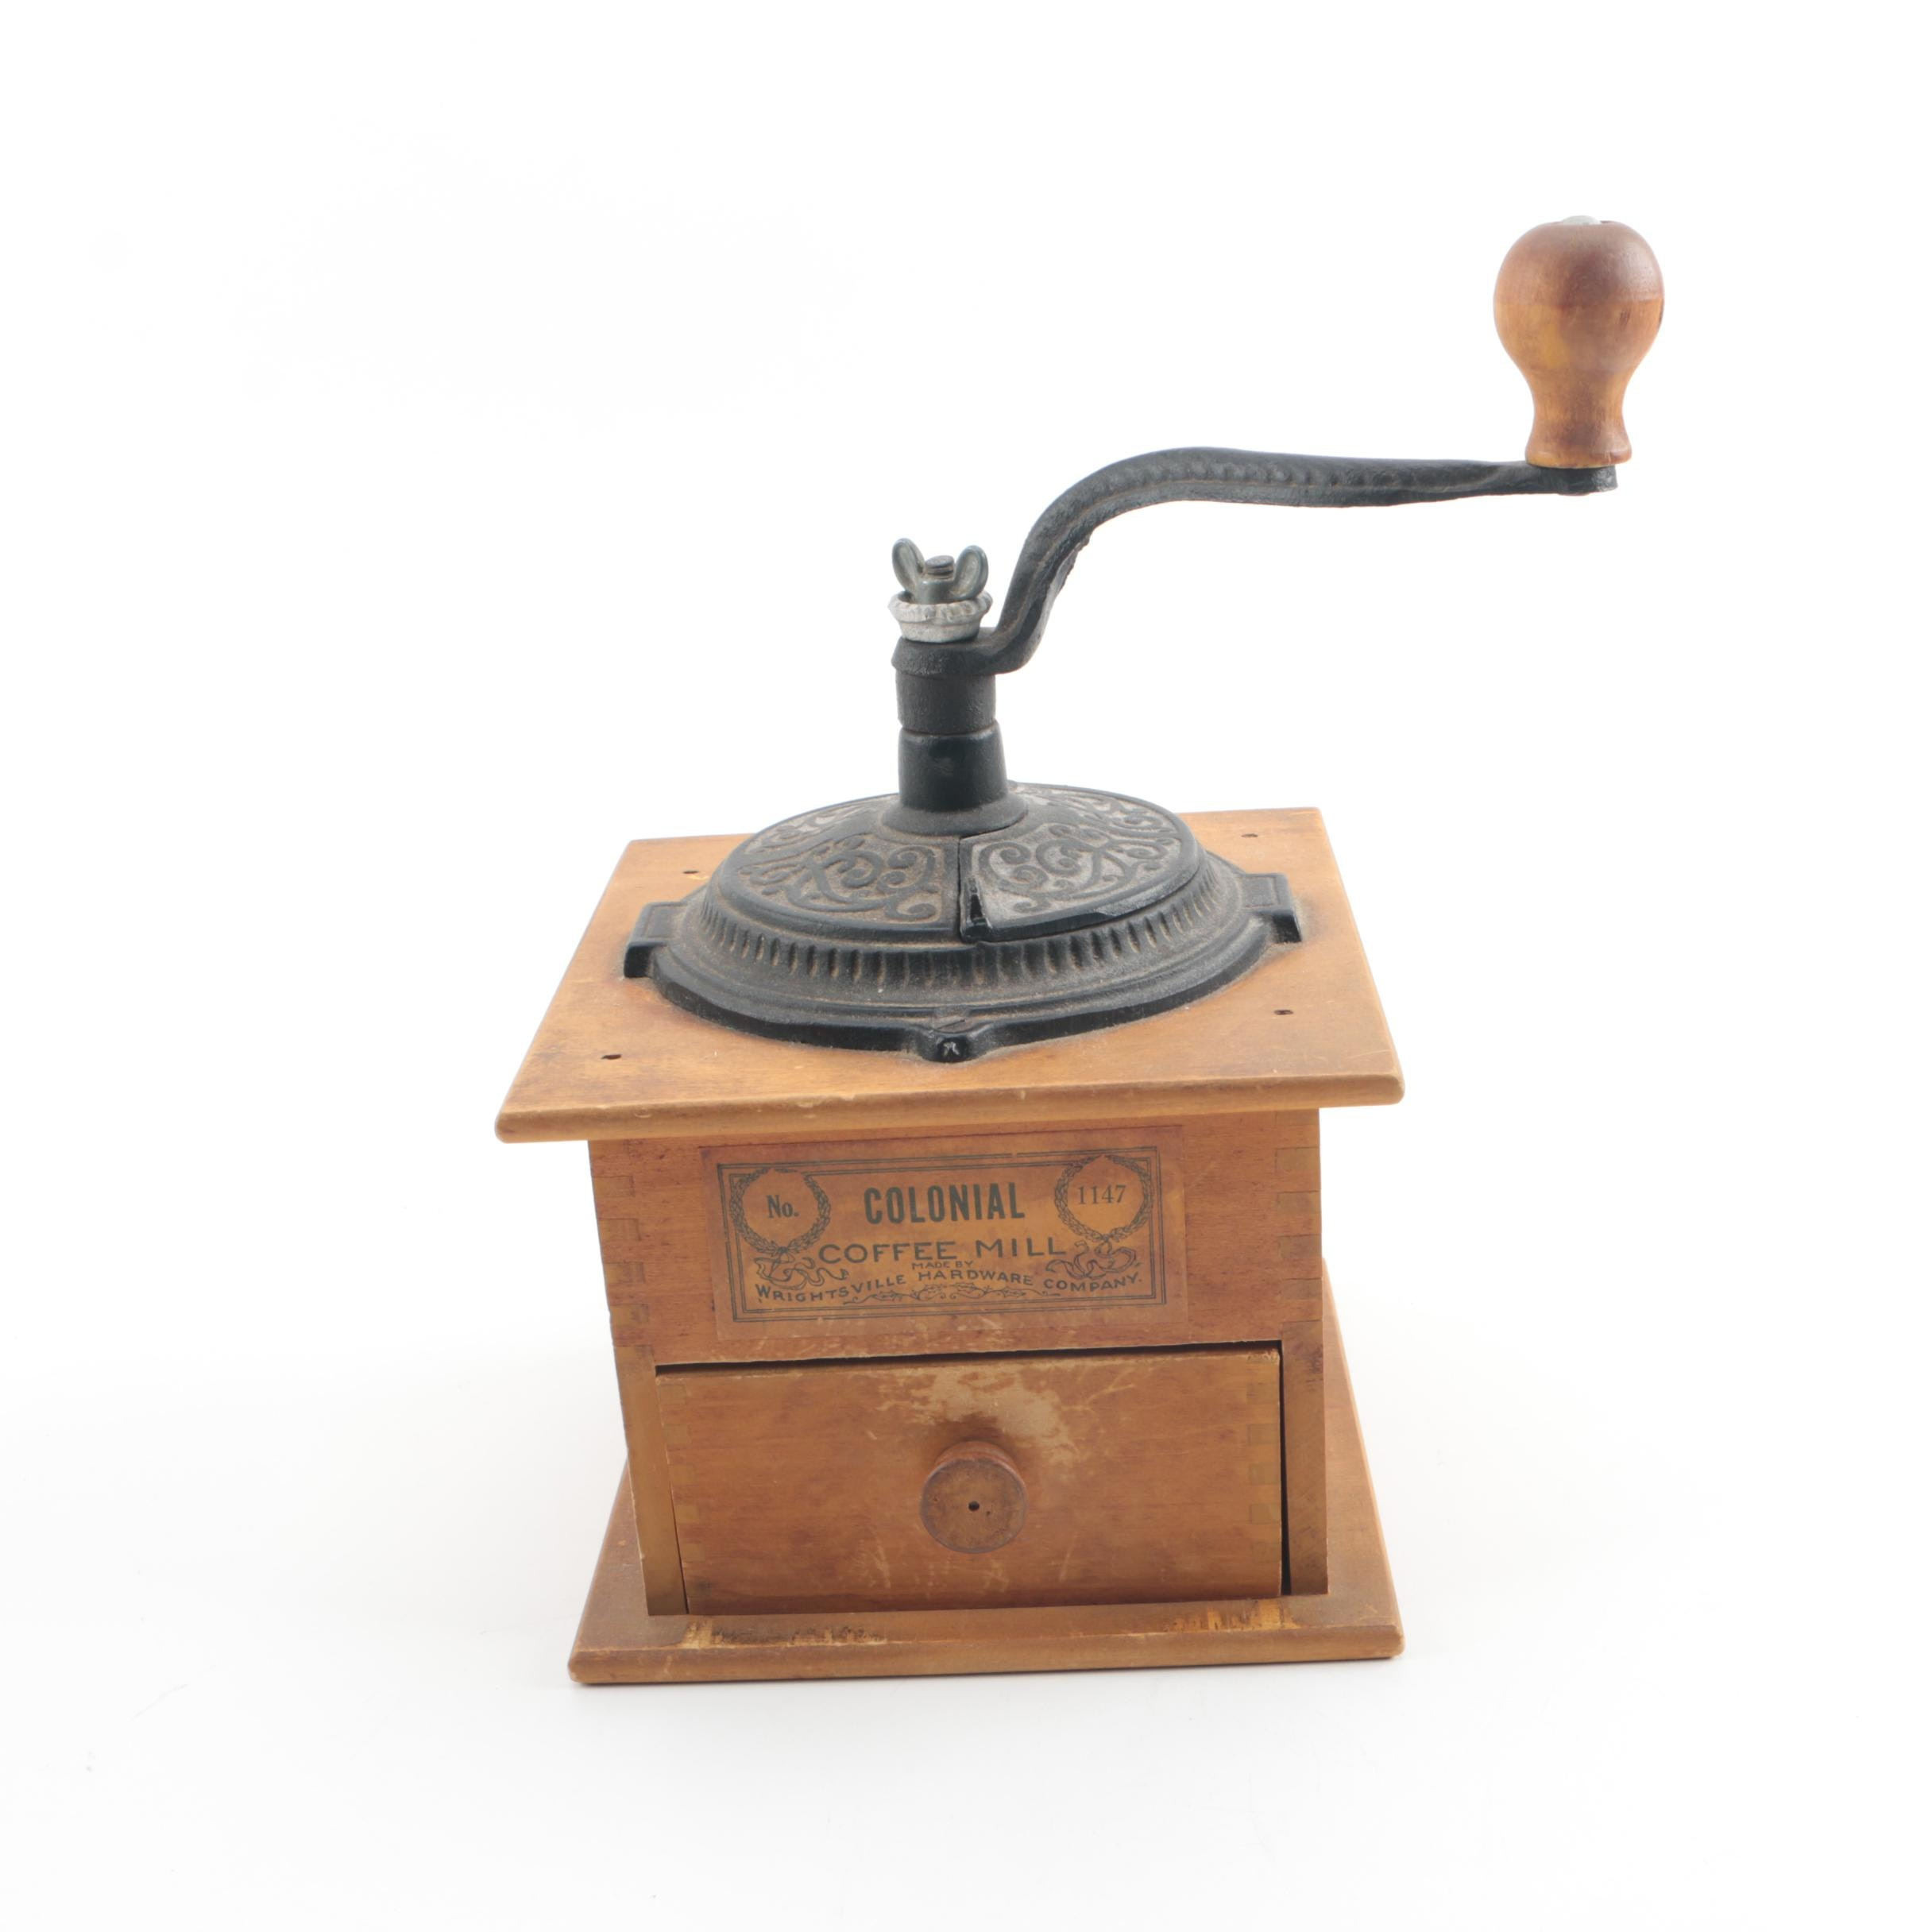 Vintage Wrightsville Hardware Co. Colonial Coffee Mill